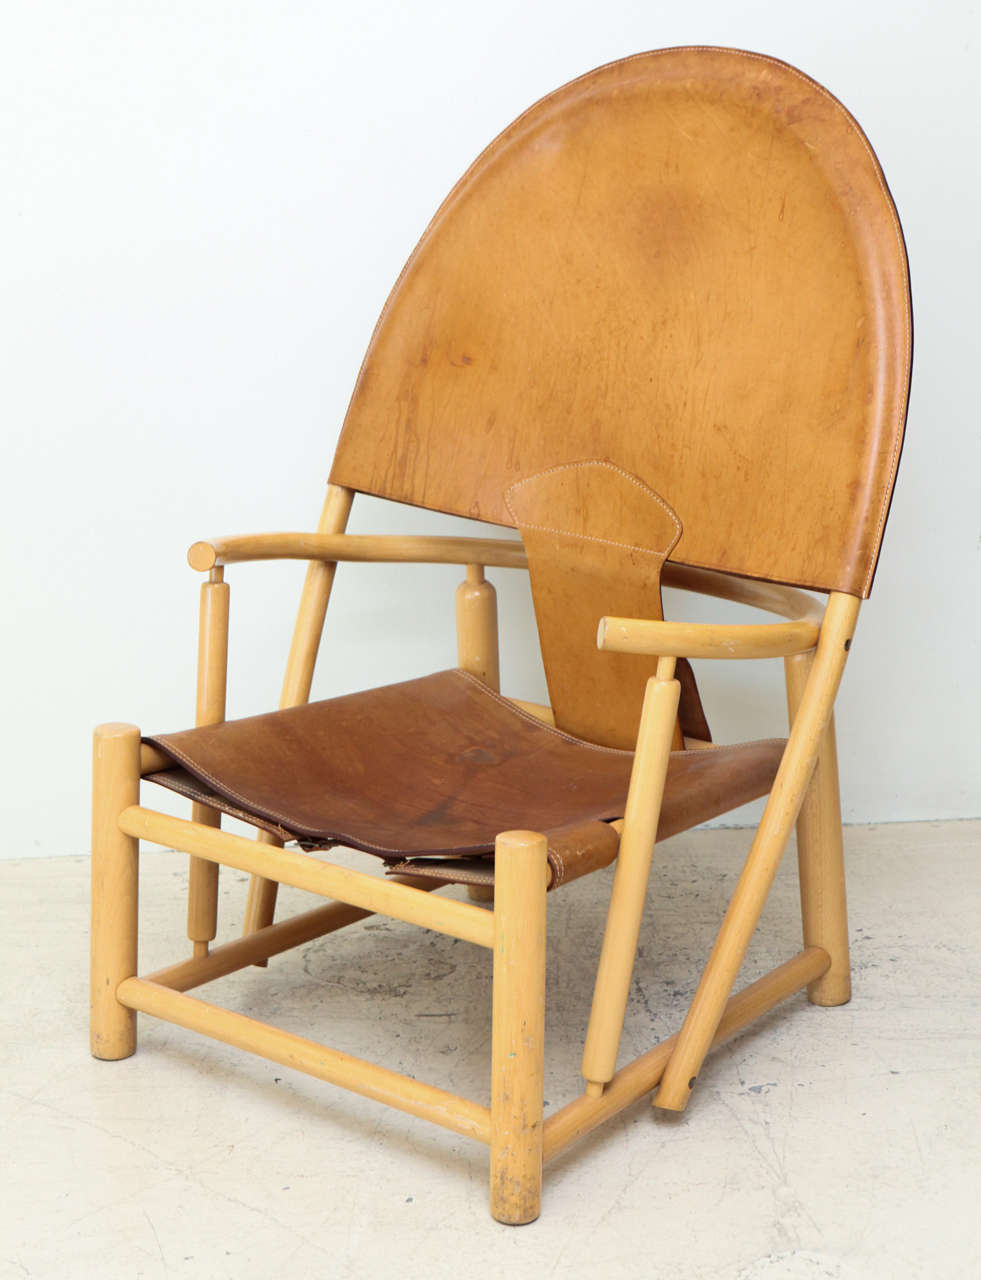 Rare leather and beech hoop chair by Borge Mogensen.  Denmark, circa 1950.